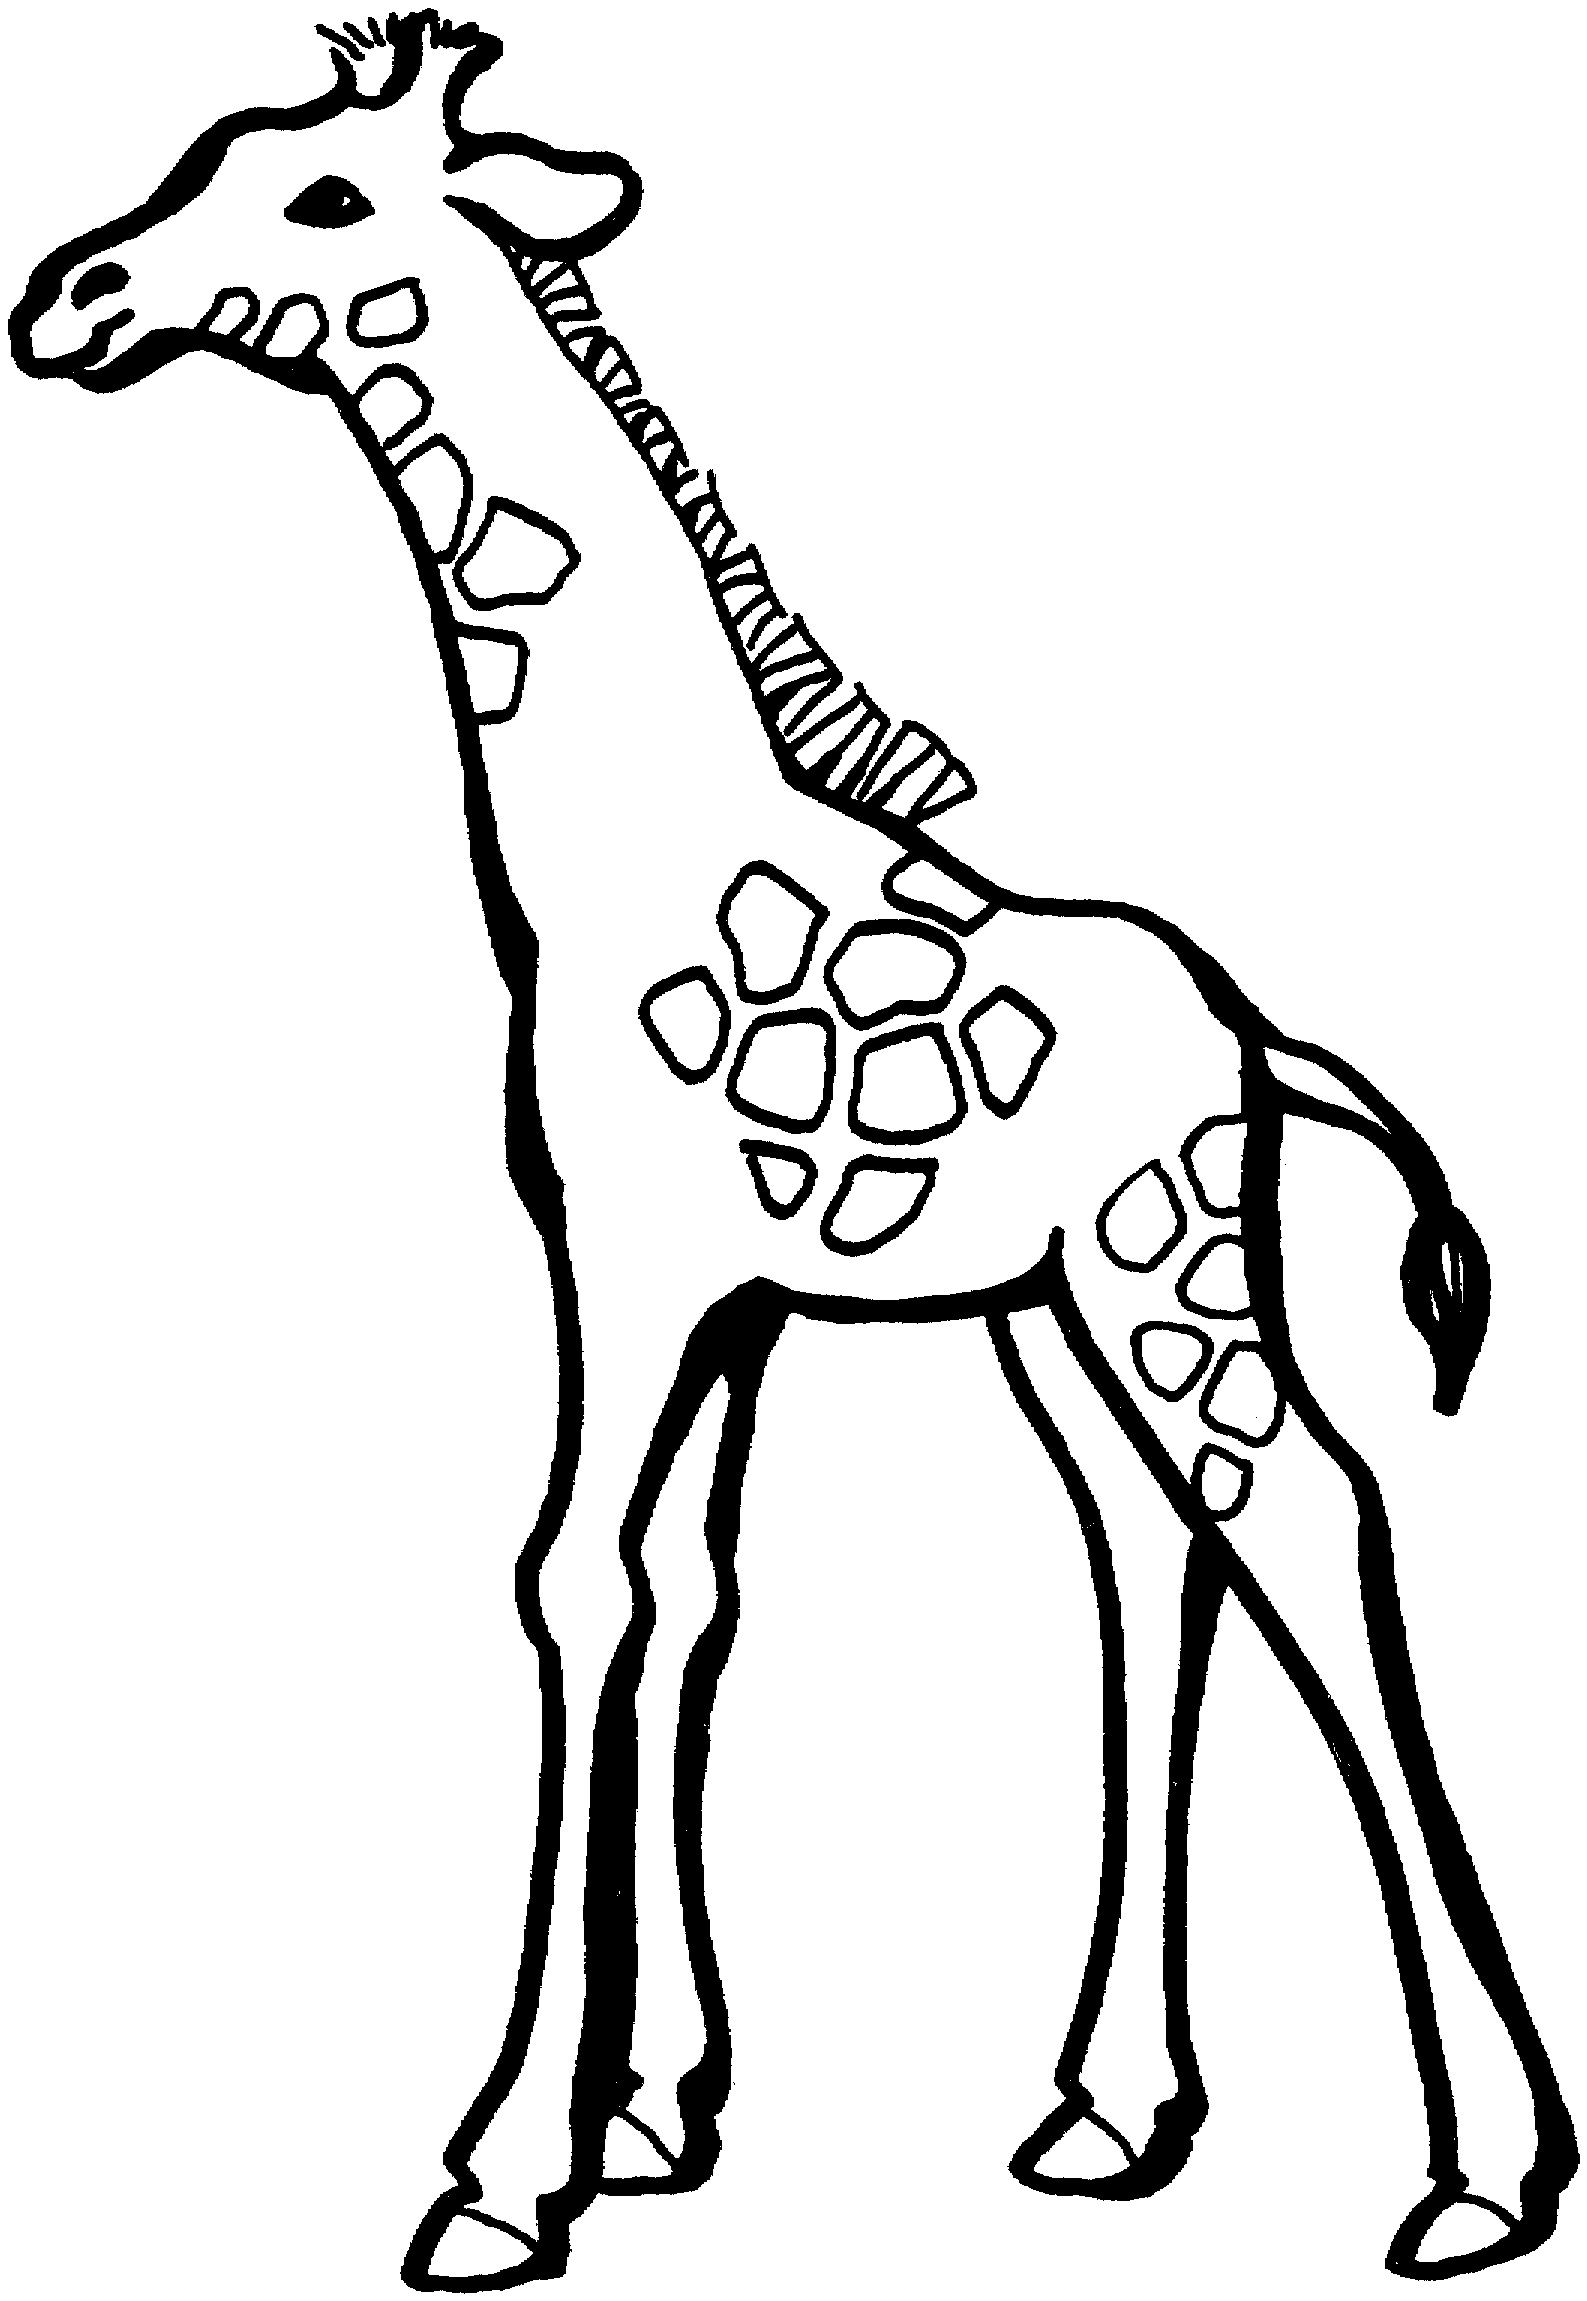 Giraffe Coloring Pages Printable Colorbook Pinterest Giraffe